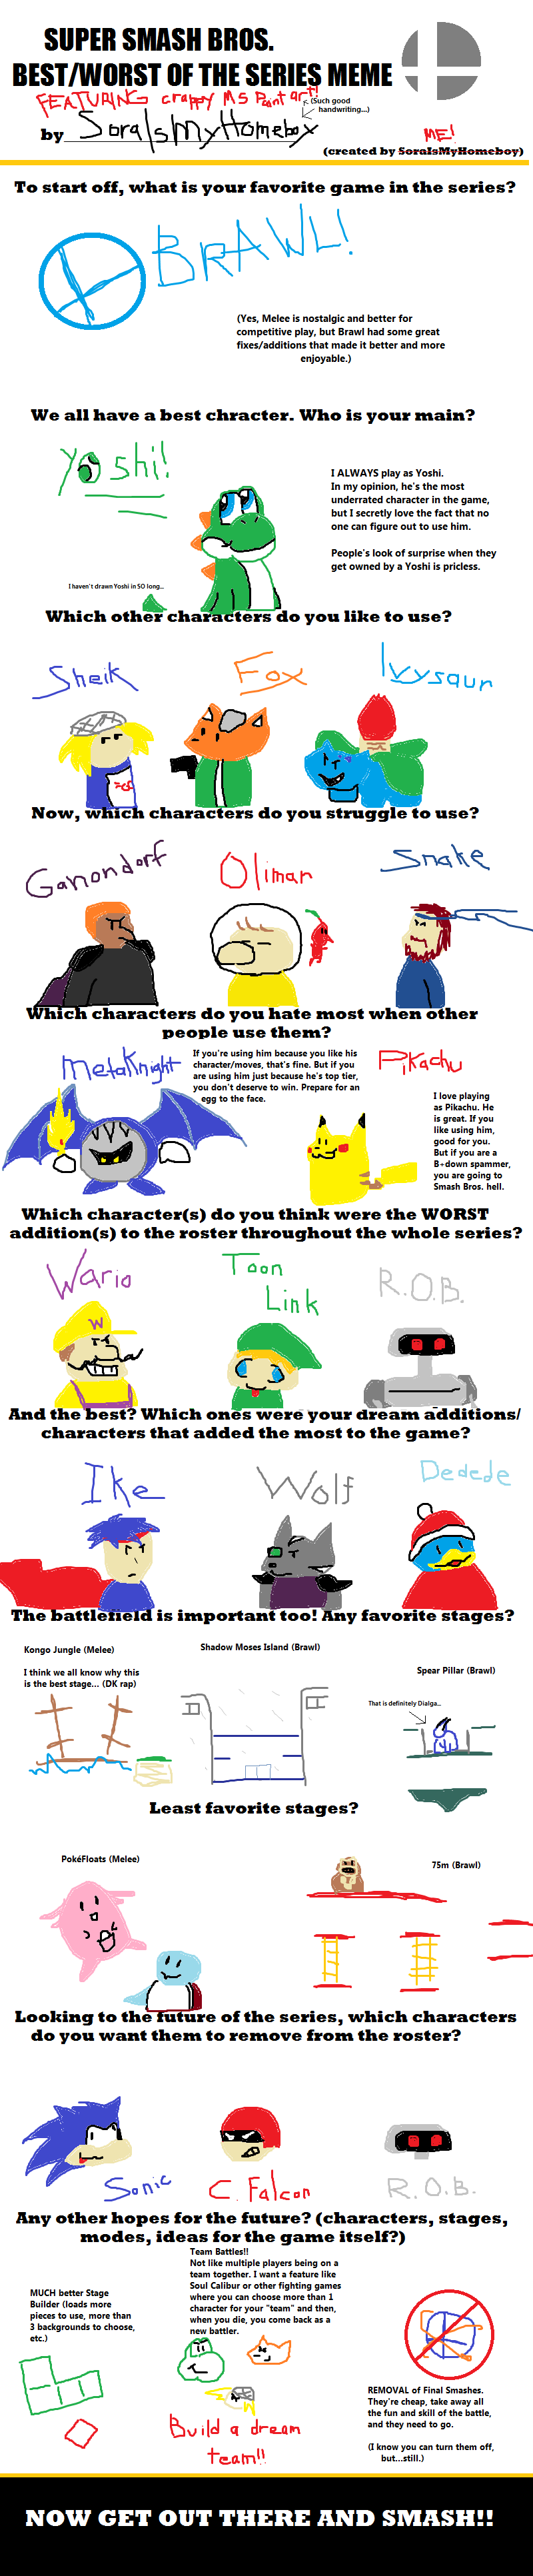 Best/Worst of Smash Bros Meme - OUTDATED by GECKO-Nuzlockes